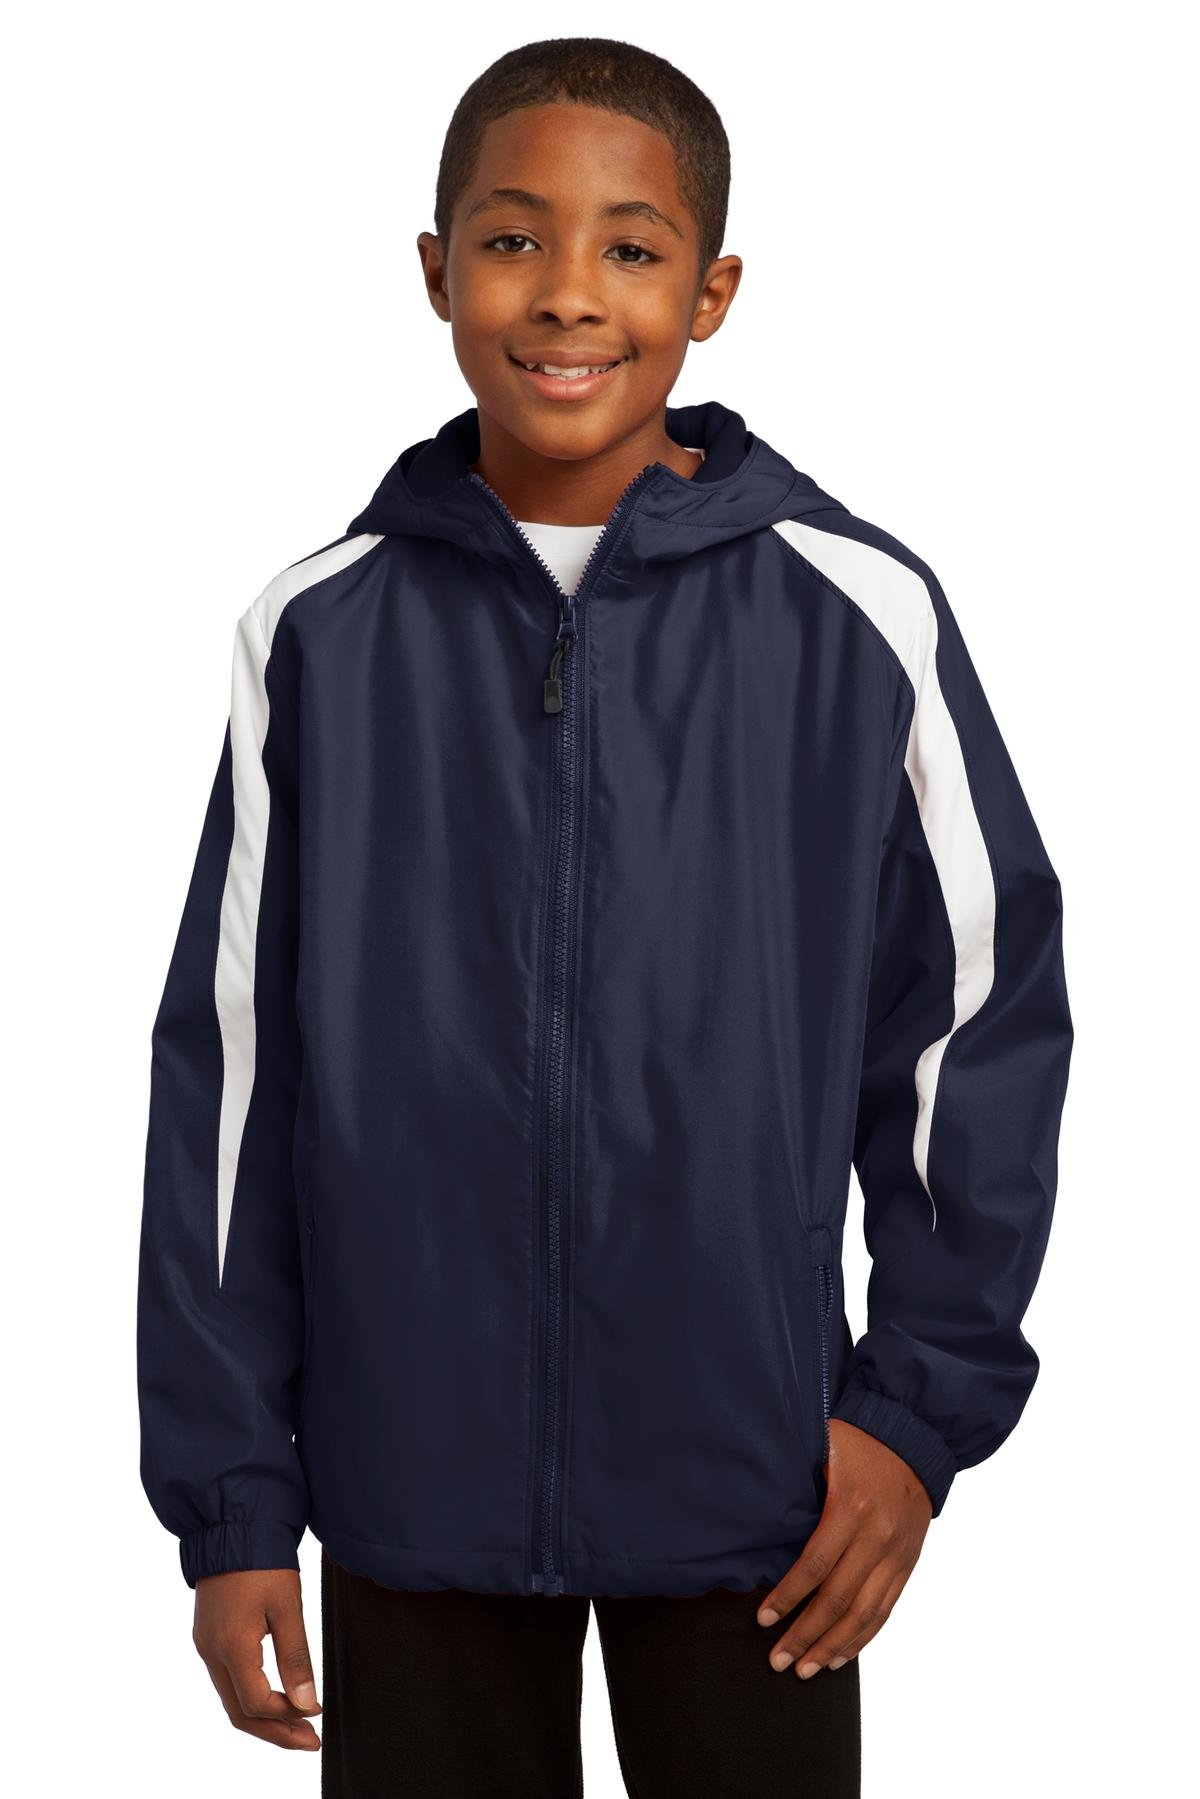 Sport-Tek Youth Fleece-Lined Colorblock Jacket, True Navy/White, M by Sport-Tek